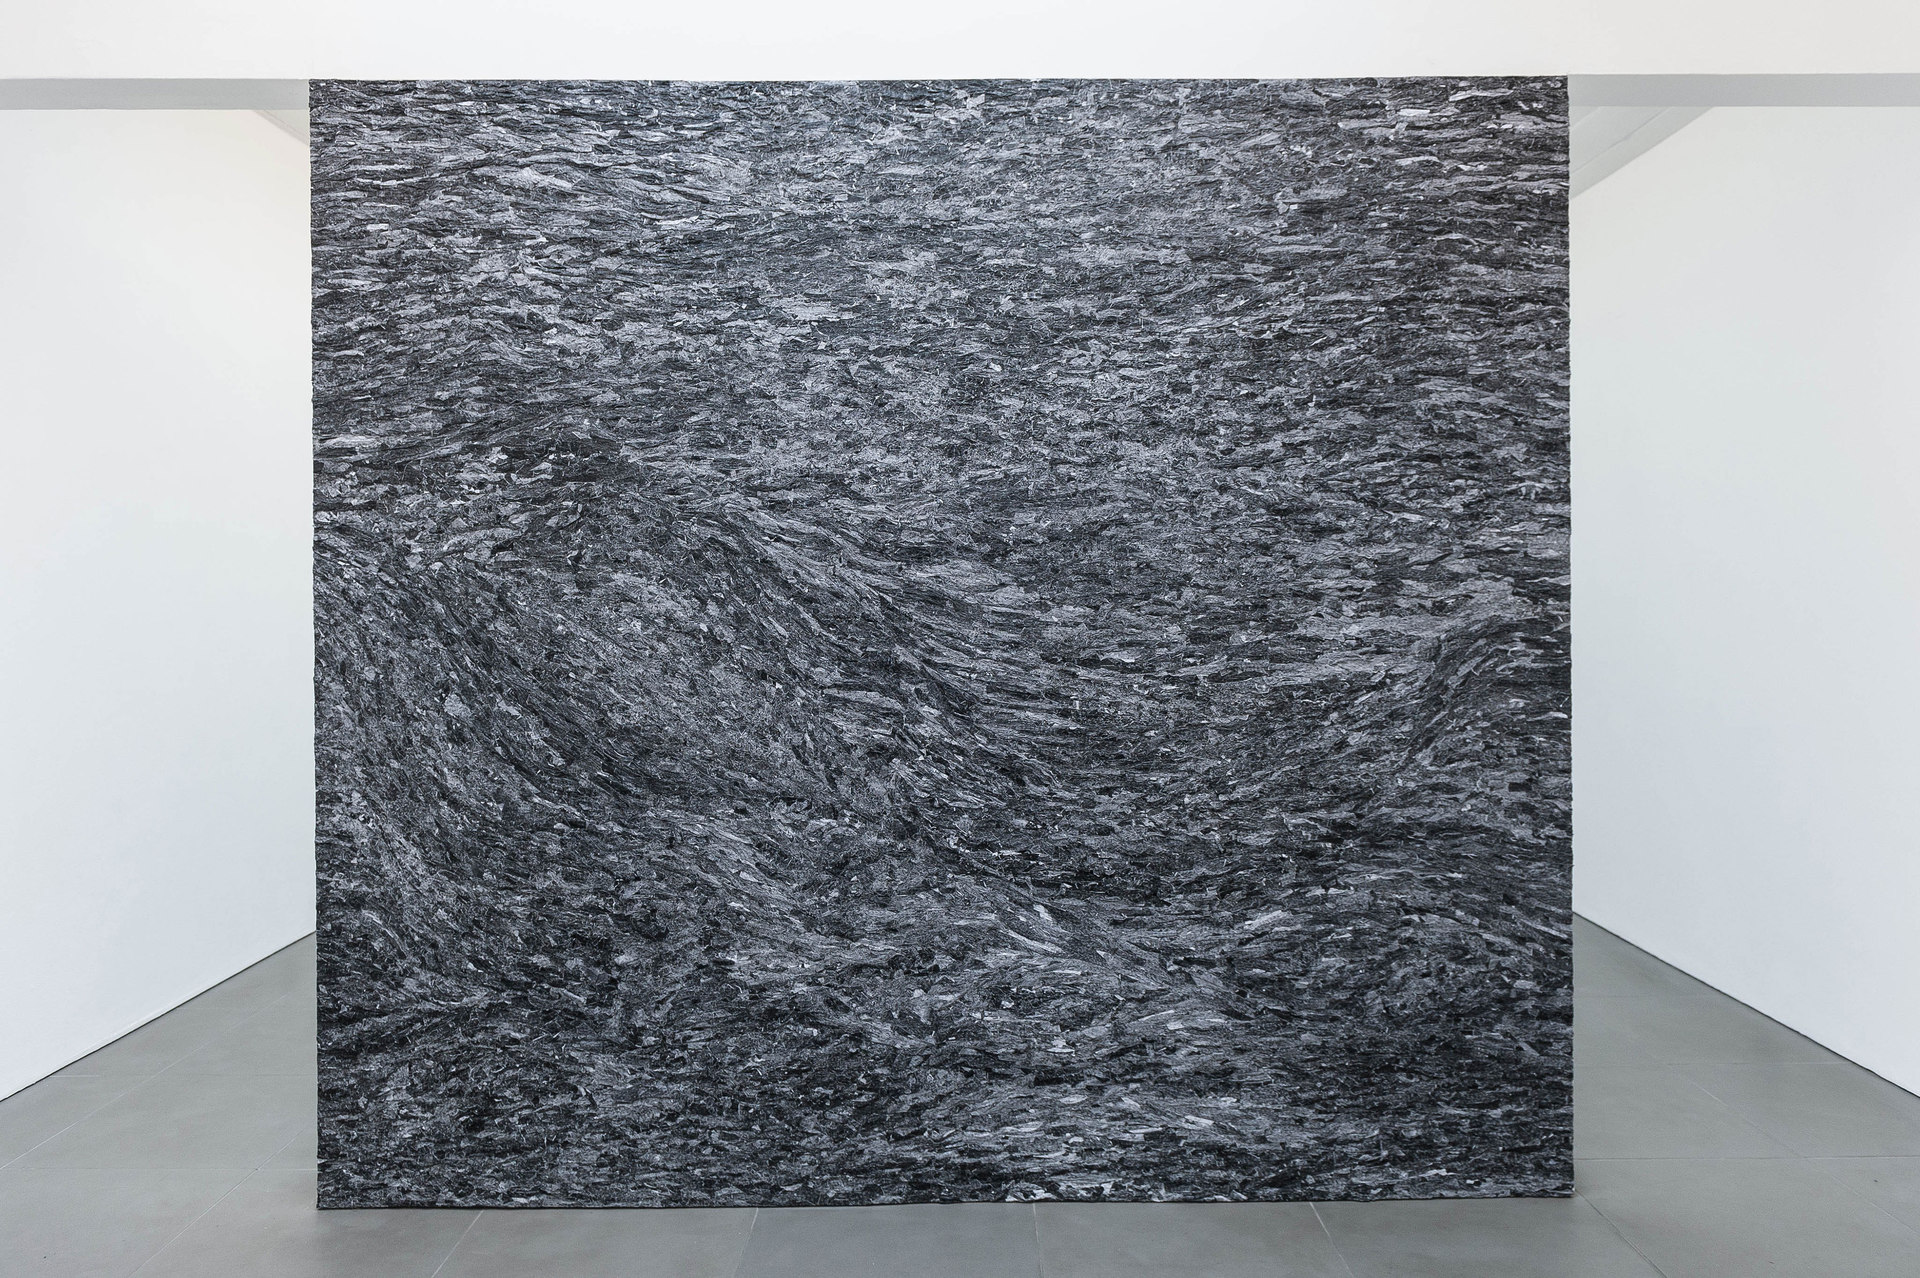 Peles Empire, Formation, 'formation 8', 2013, digital print on paper, h. 250 x w. 280 cm, Cell Project Space